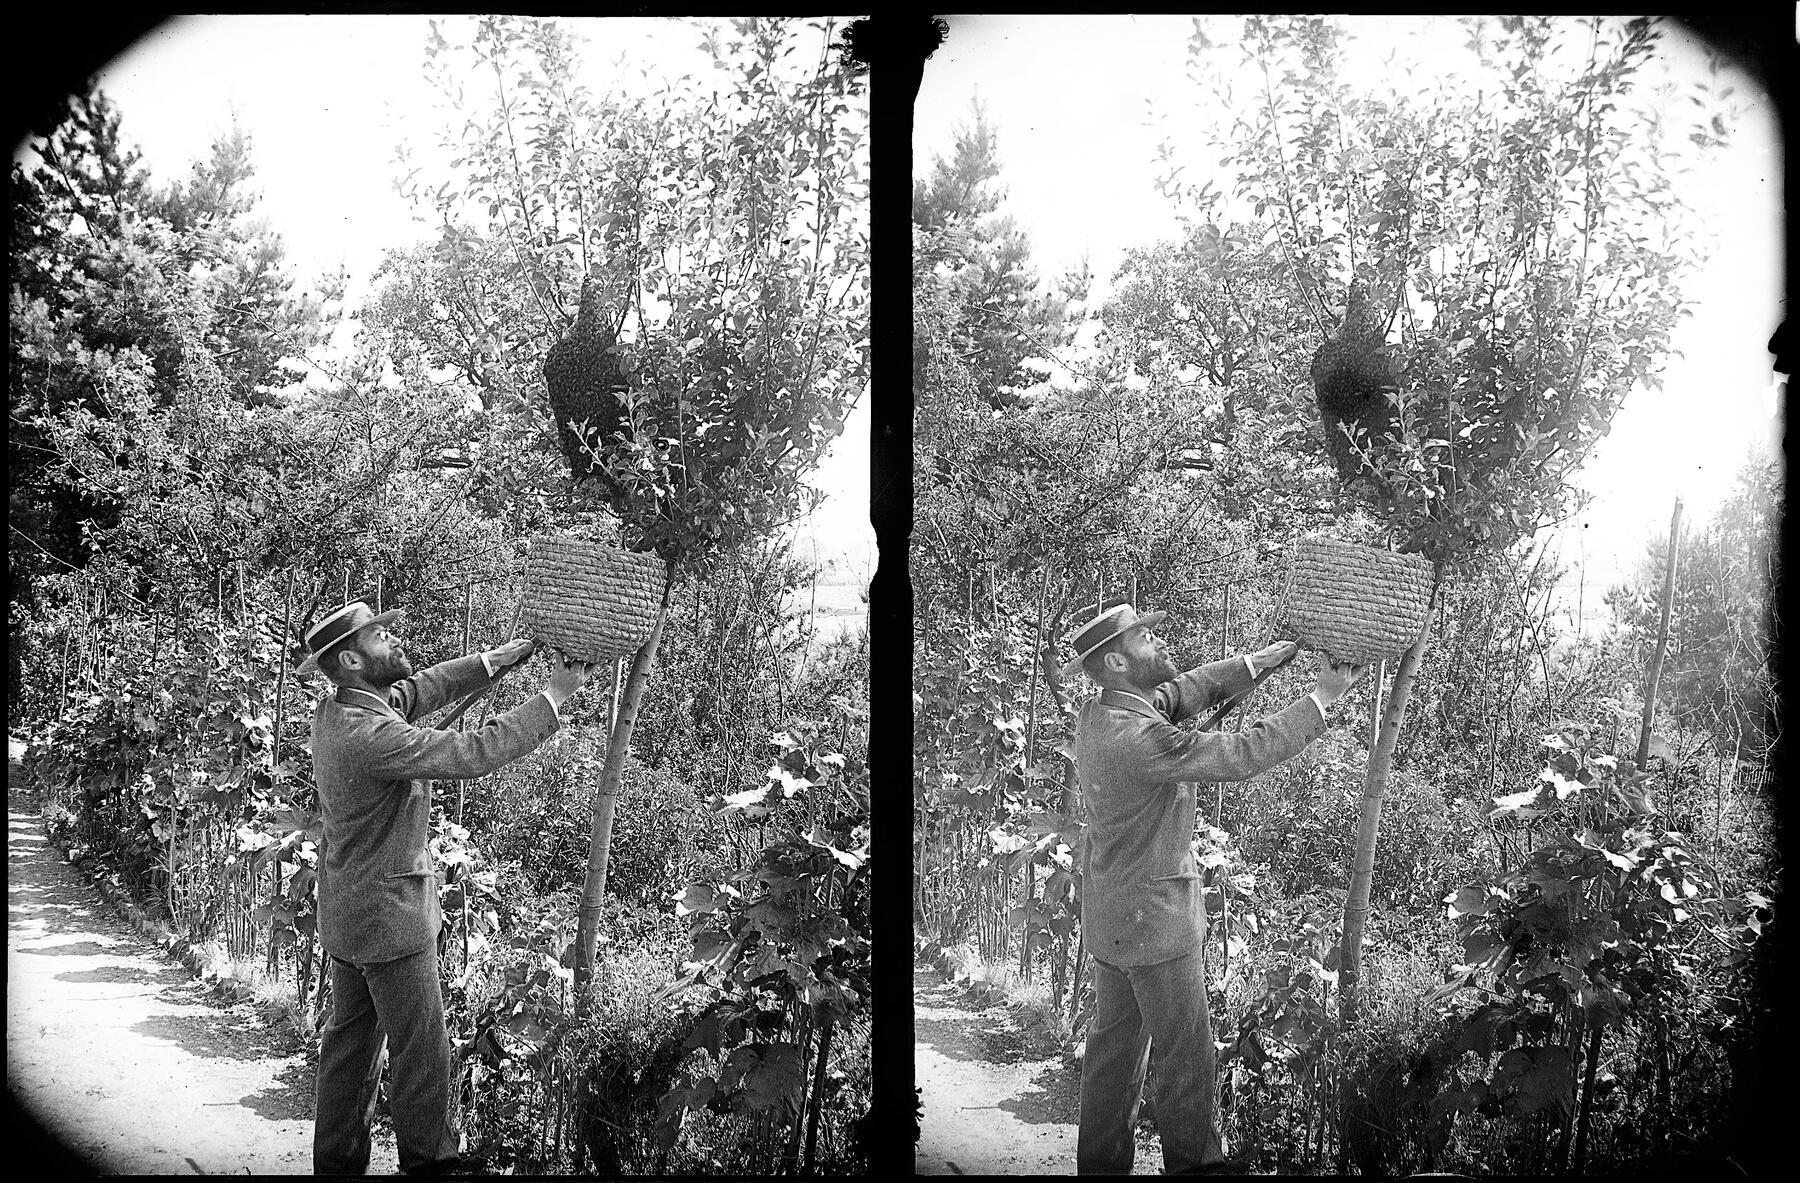 Alfred Watkins tending to some bees